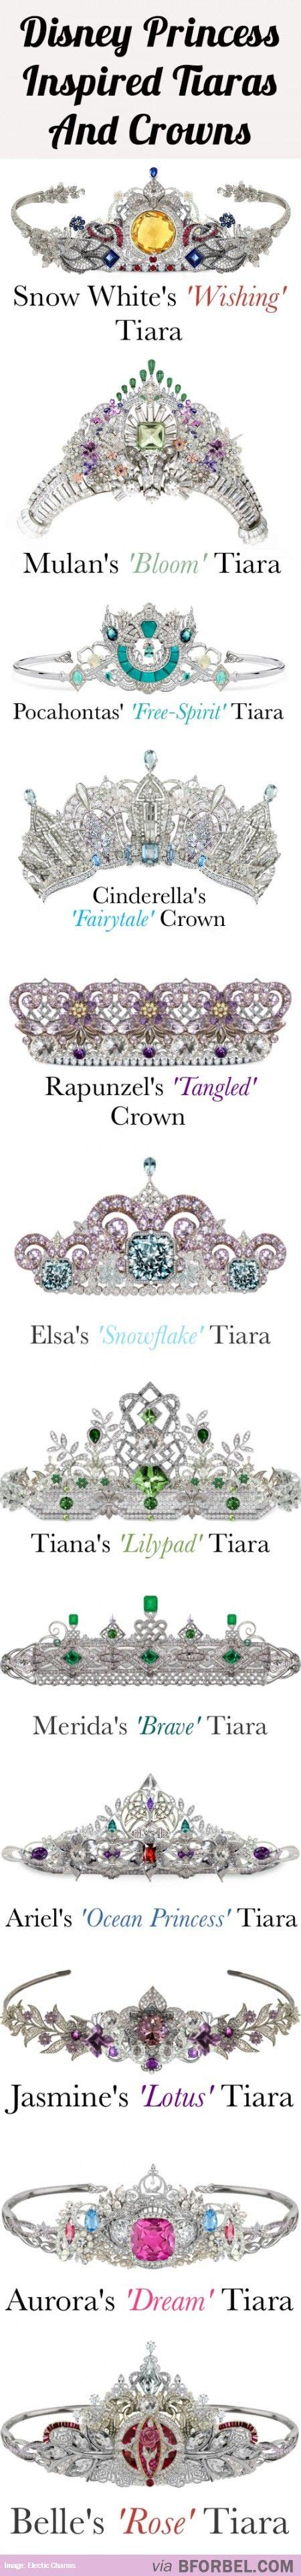 12 disney princess tiaras and crowns oh it s a tiara a tiara i a tiara put it